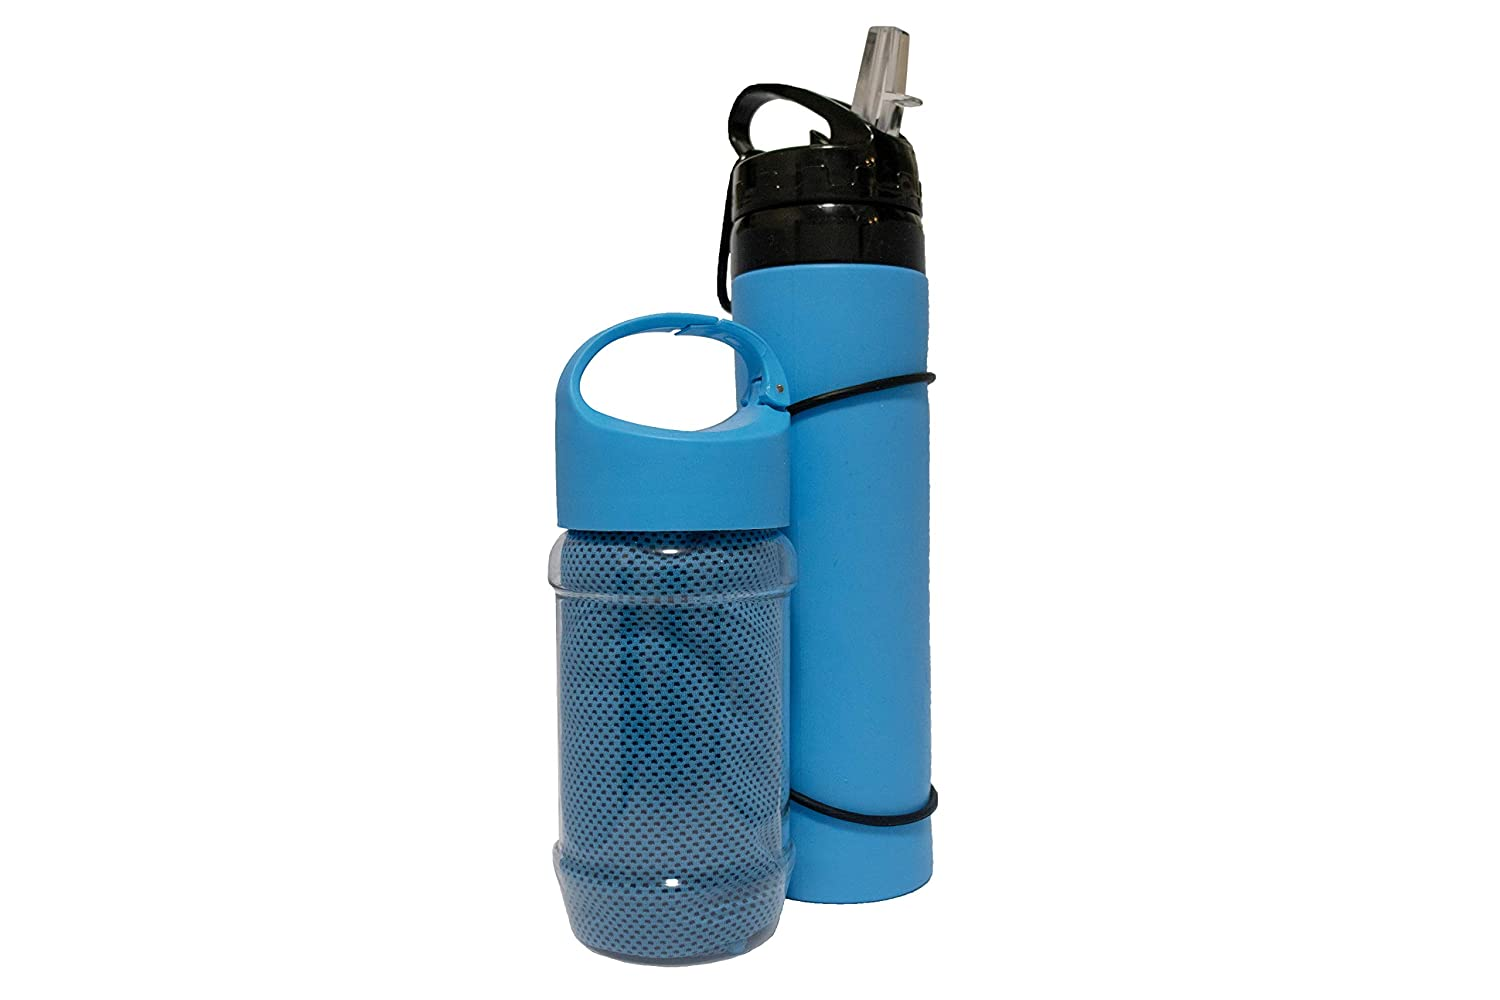 BPA Free Leak-Proof Silicone Campfire Products Collapsible Water Bottle and Bonus Cooling Towel Ideal refillable Water Bottles for Travel Sport Camping Hiking